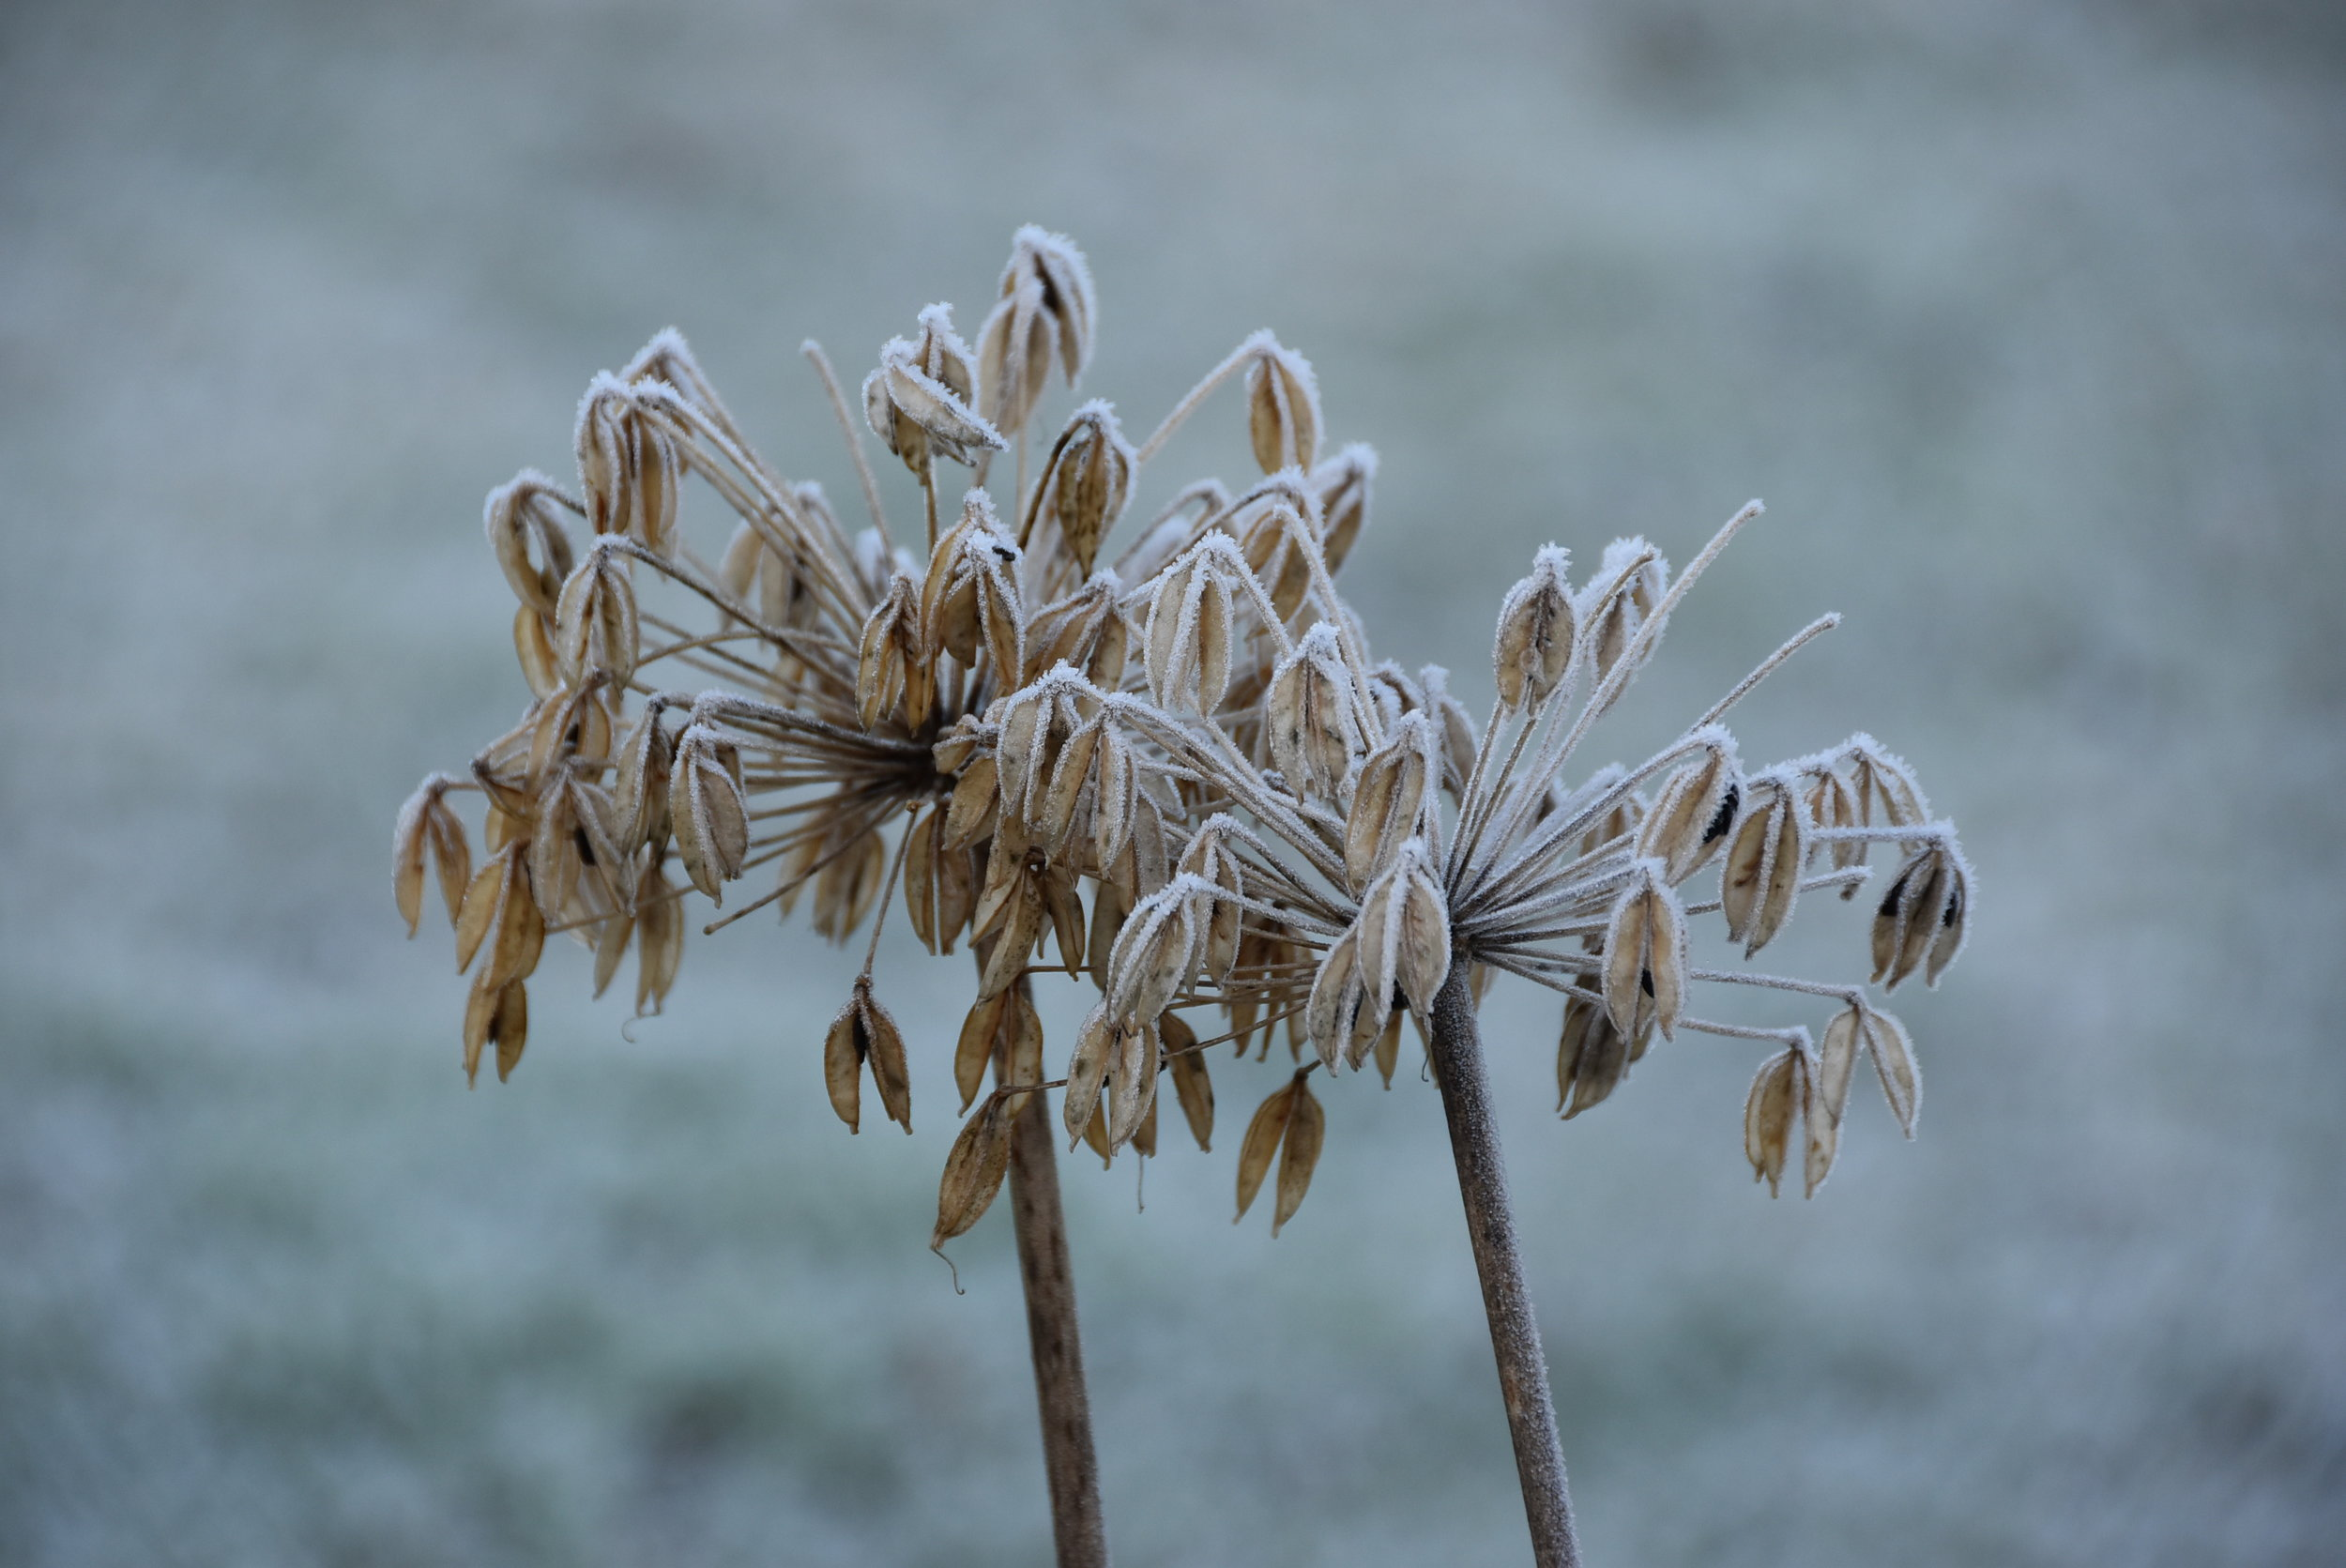 Delicate seeds and frost